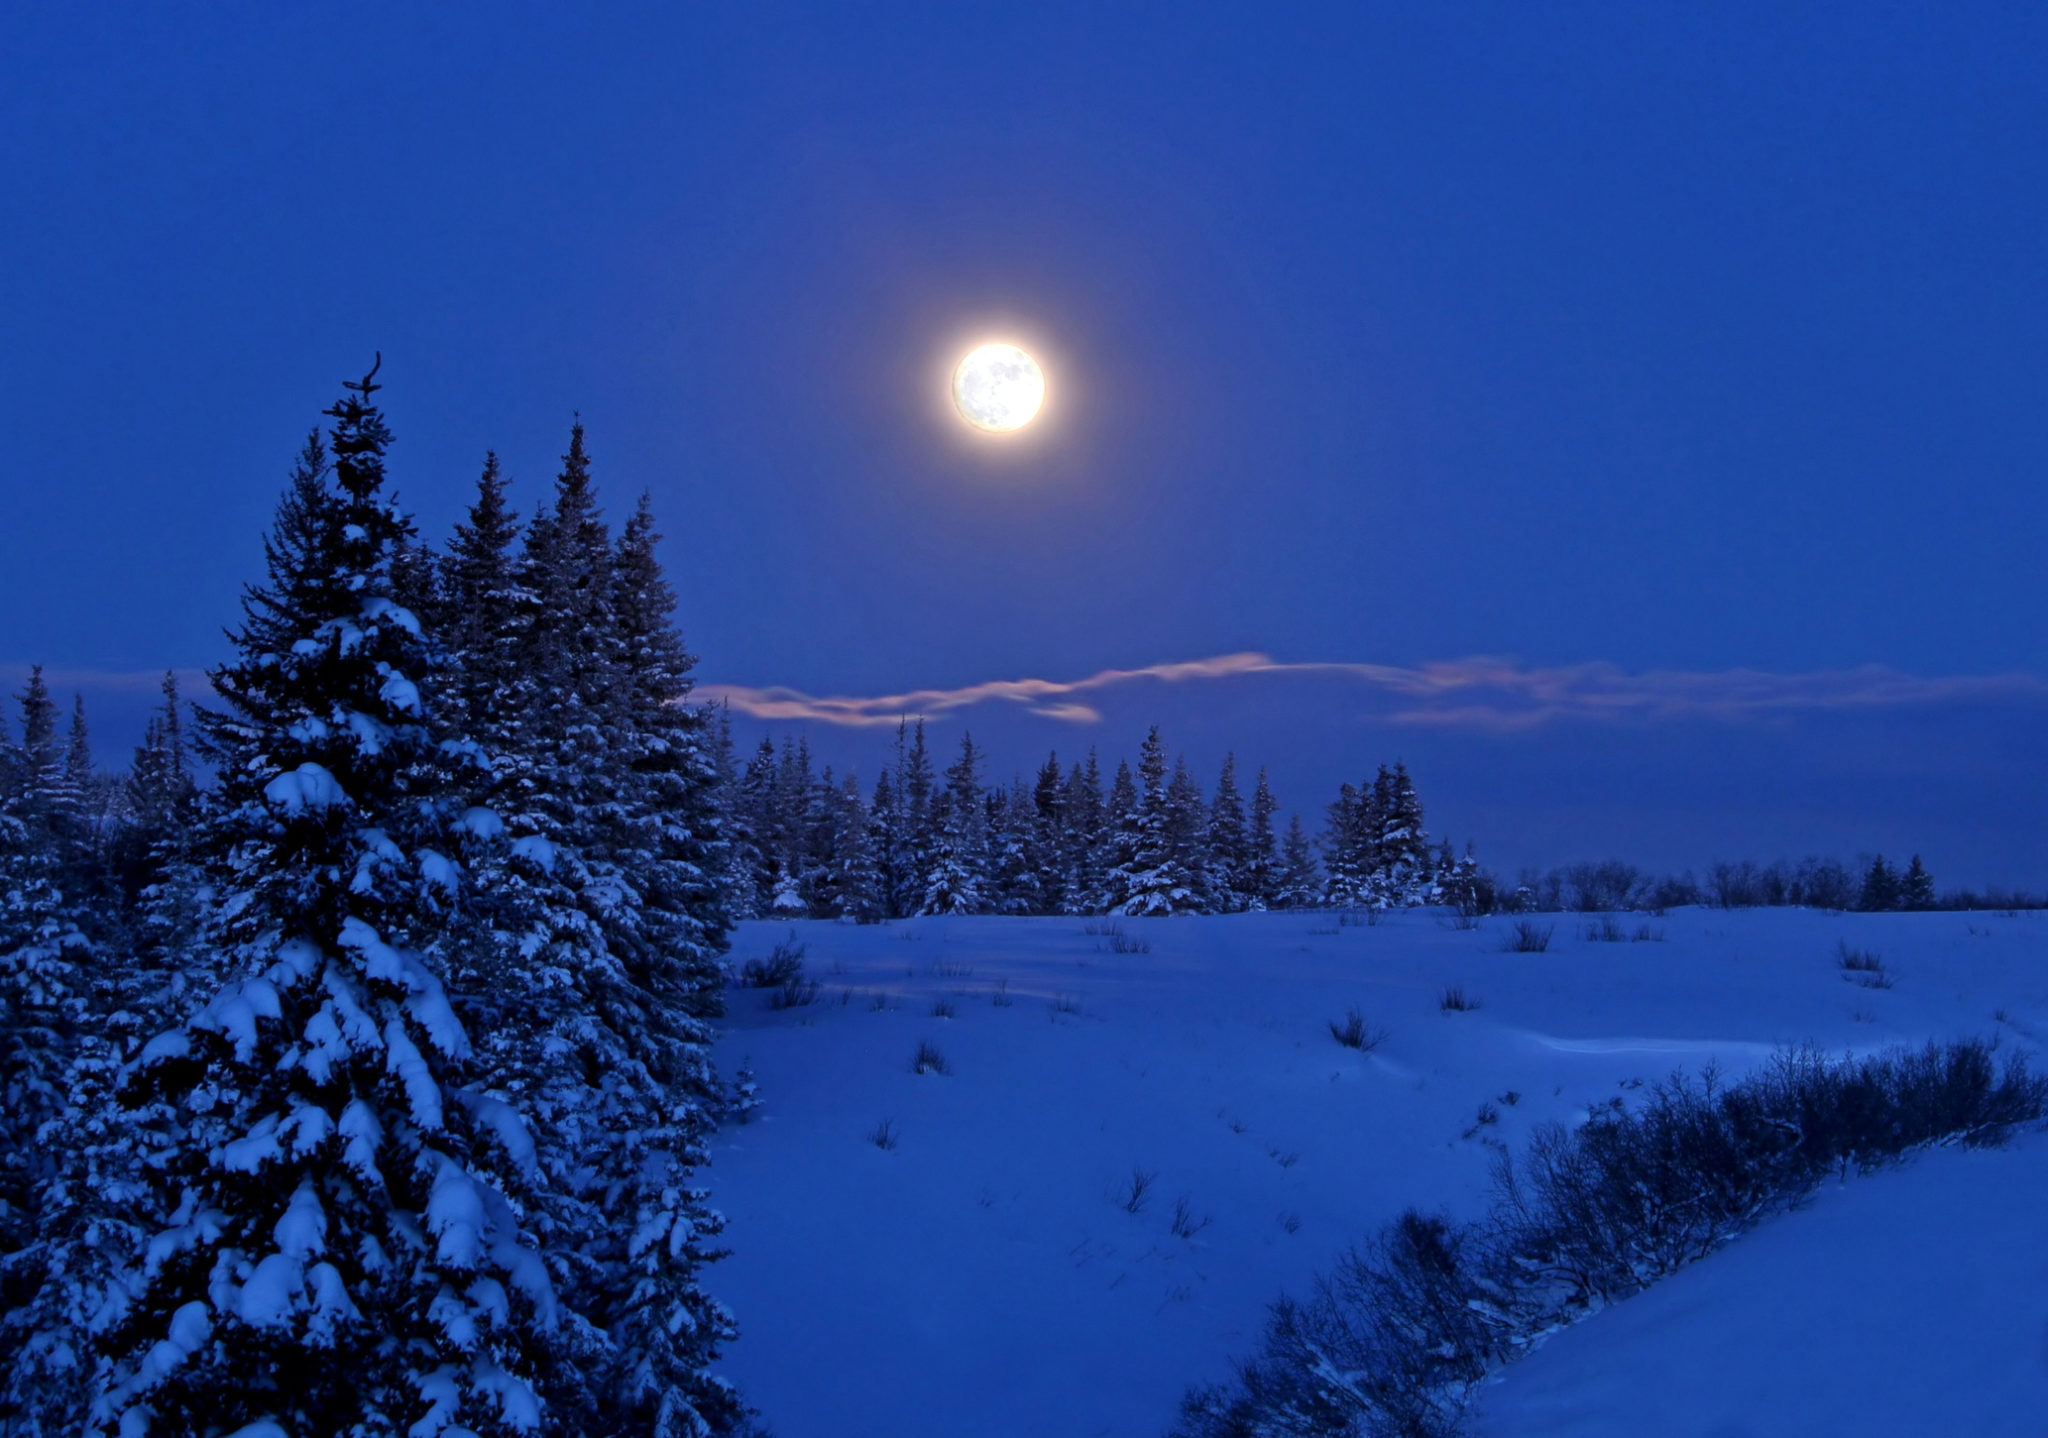 Full moon rising over a winter landscape in Alaska at night with spruce trees and snow.